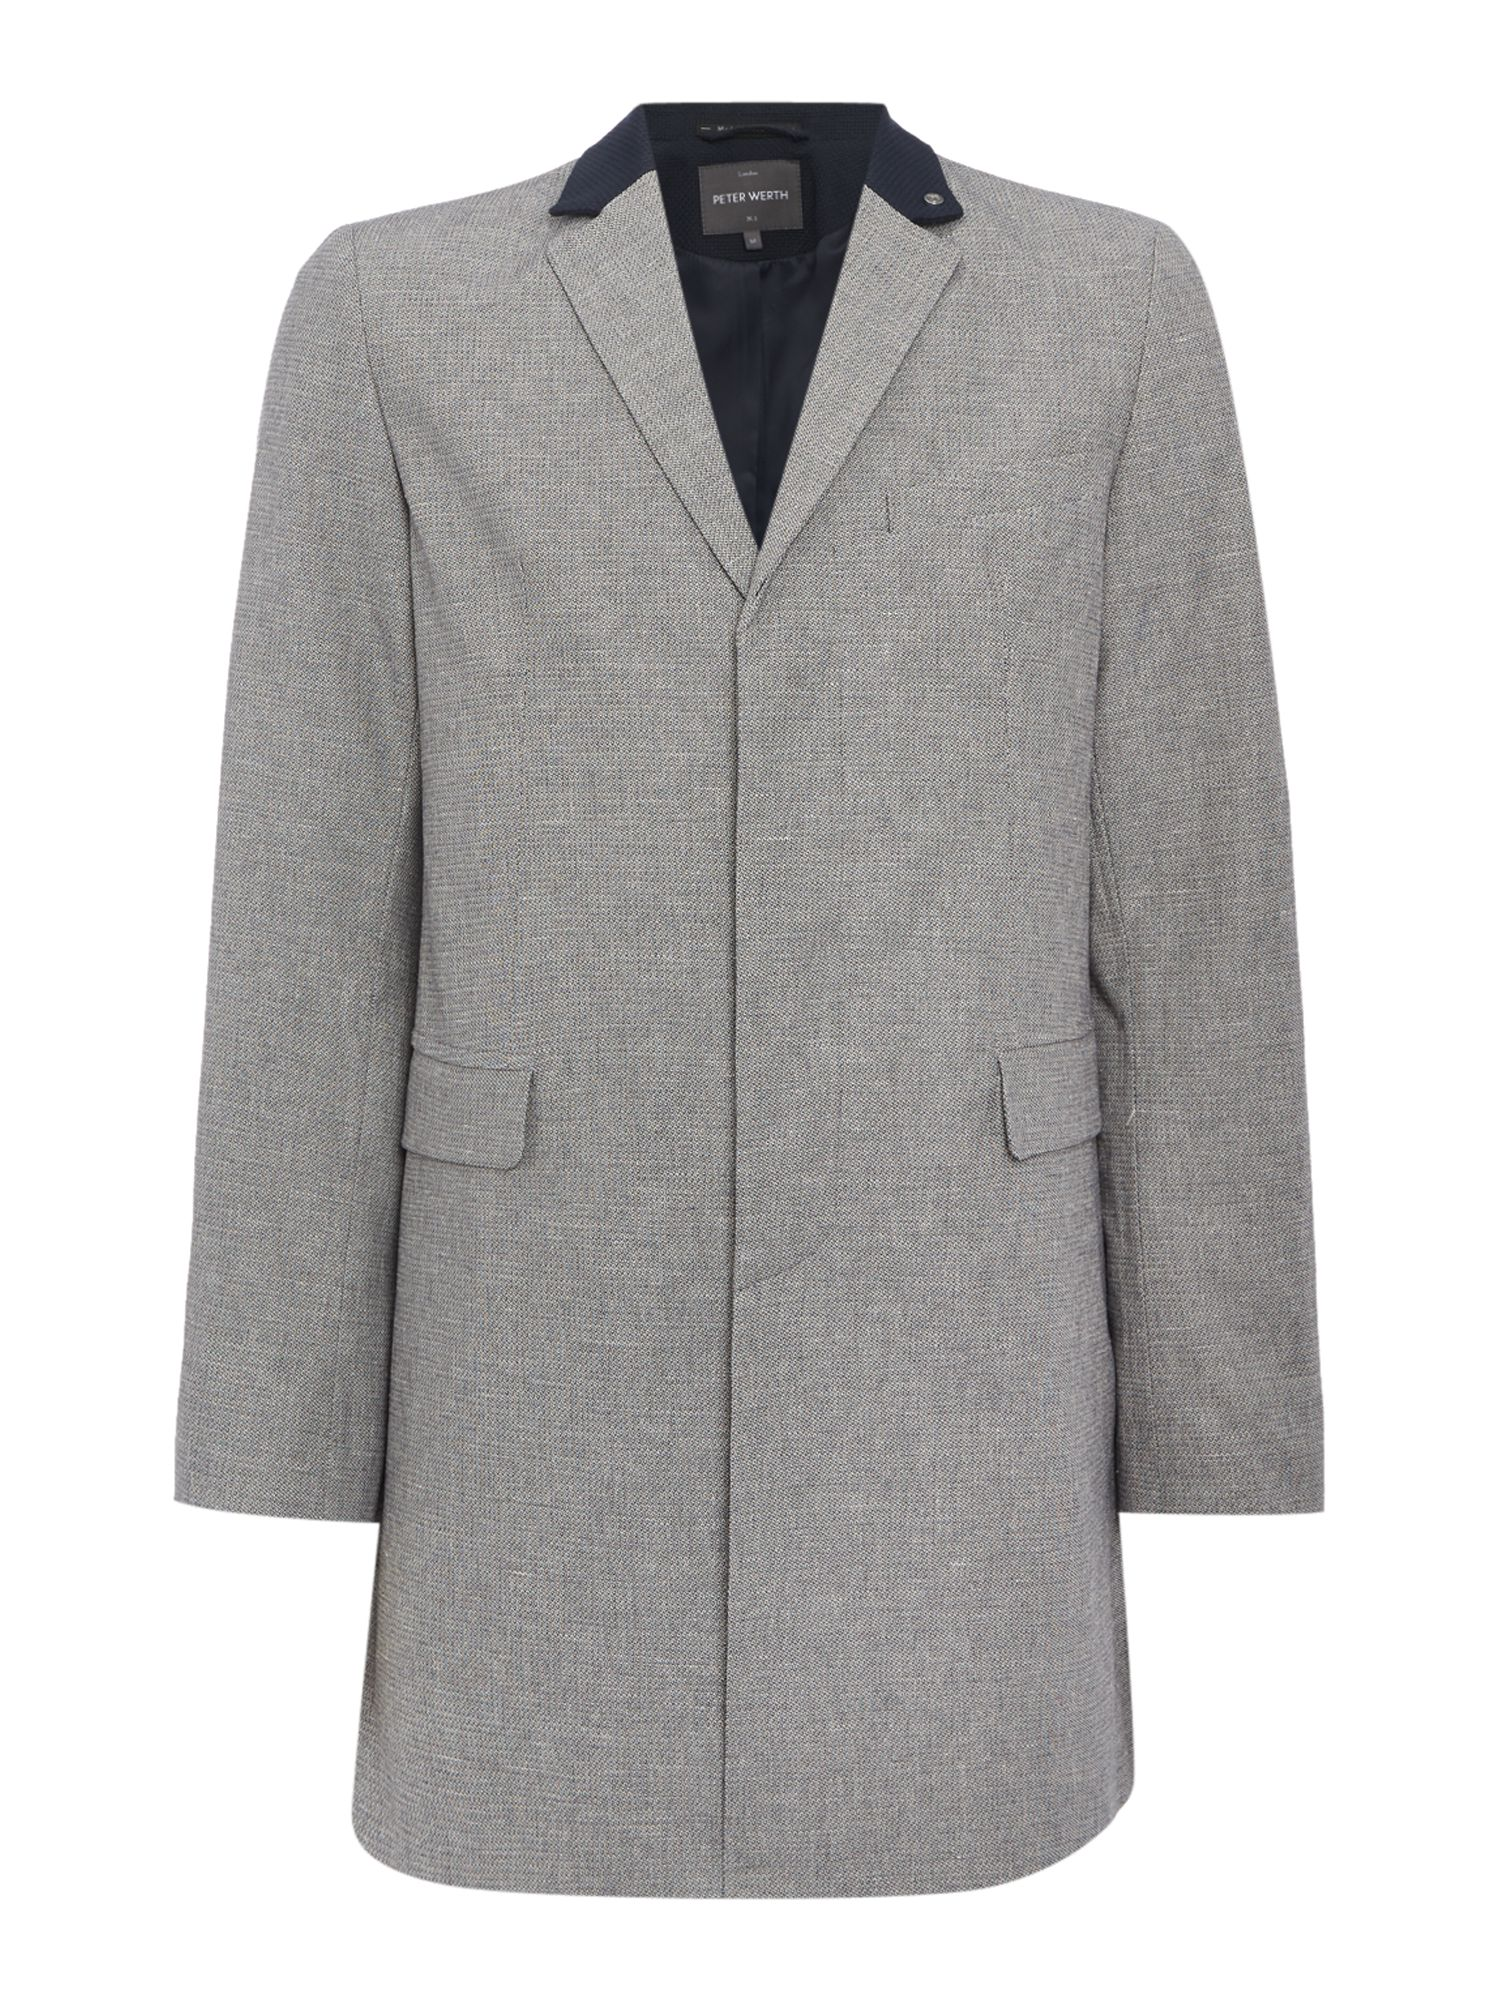 Men's Vintage Style Coats and Jackets Mens Peter Werth Cropley Marble Textured London Topcoat £139.00 AT vintagedancer.com